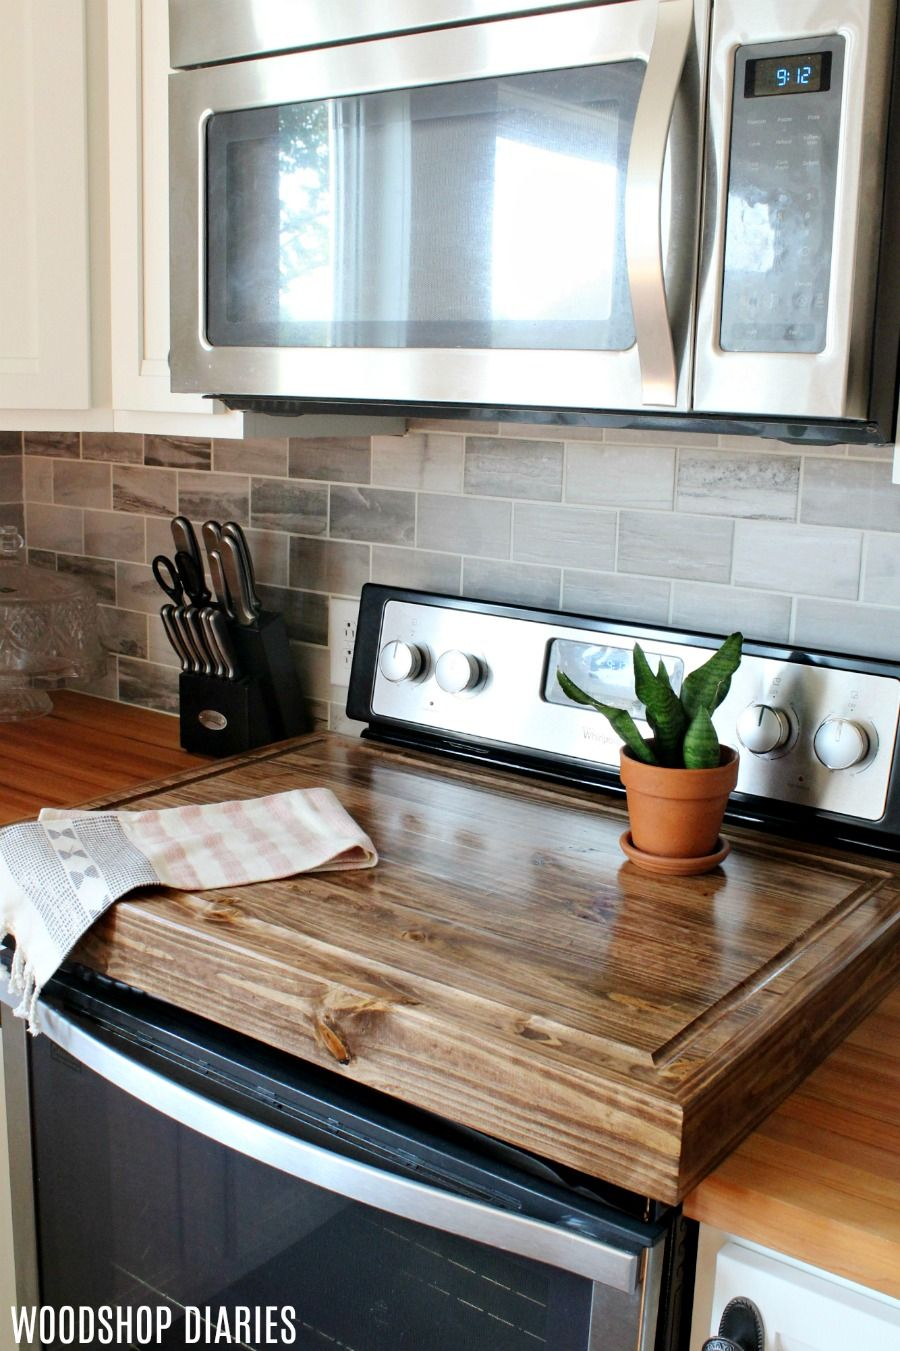 Make A Diy Wooden Stove Top Cover And Add More Counter Space To Your Kitchen Wooden Stove Top Covers Stove Top Cover Kitchen Decor